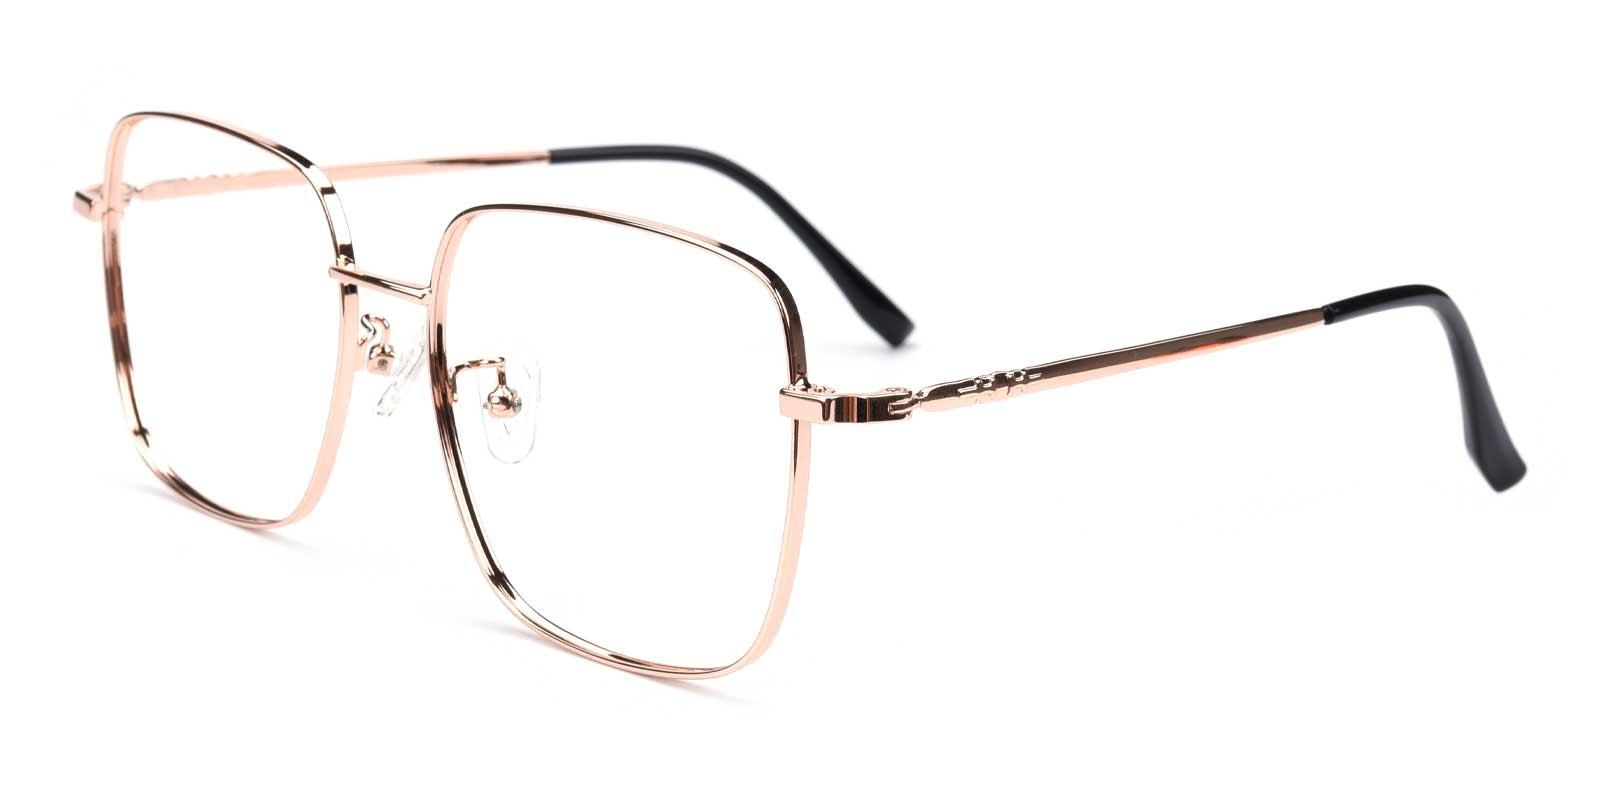 Kelly-Gold-Square-Metal-Eyeglasses-additional1